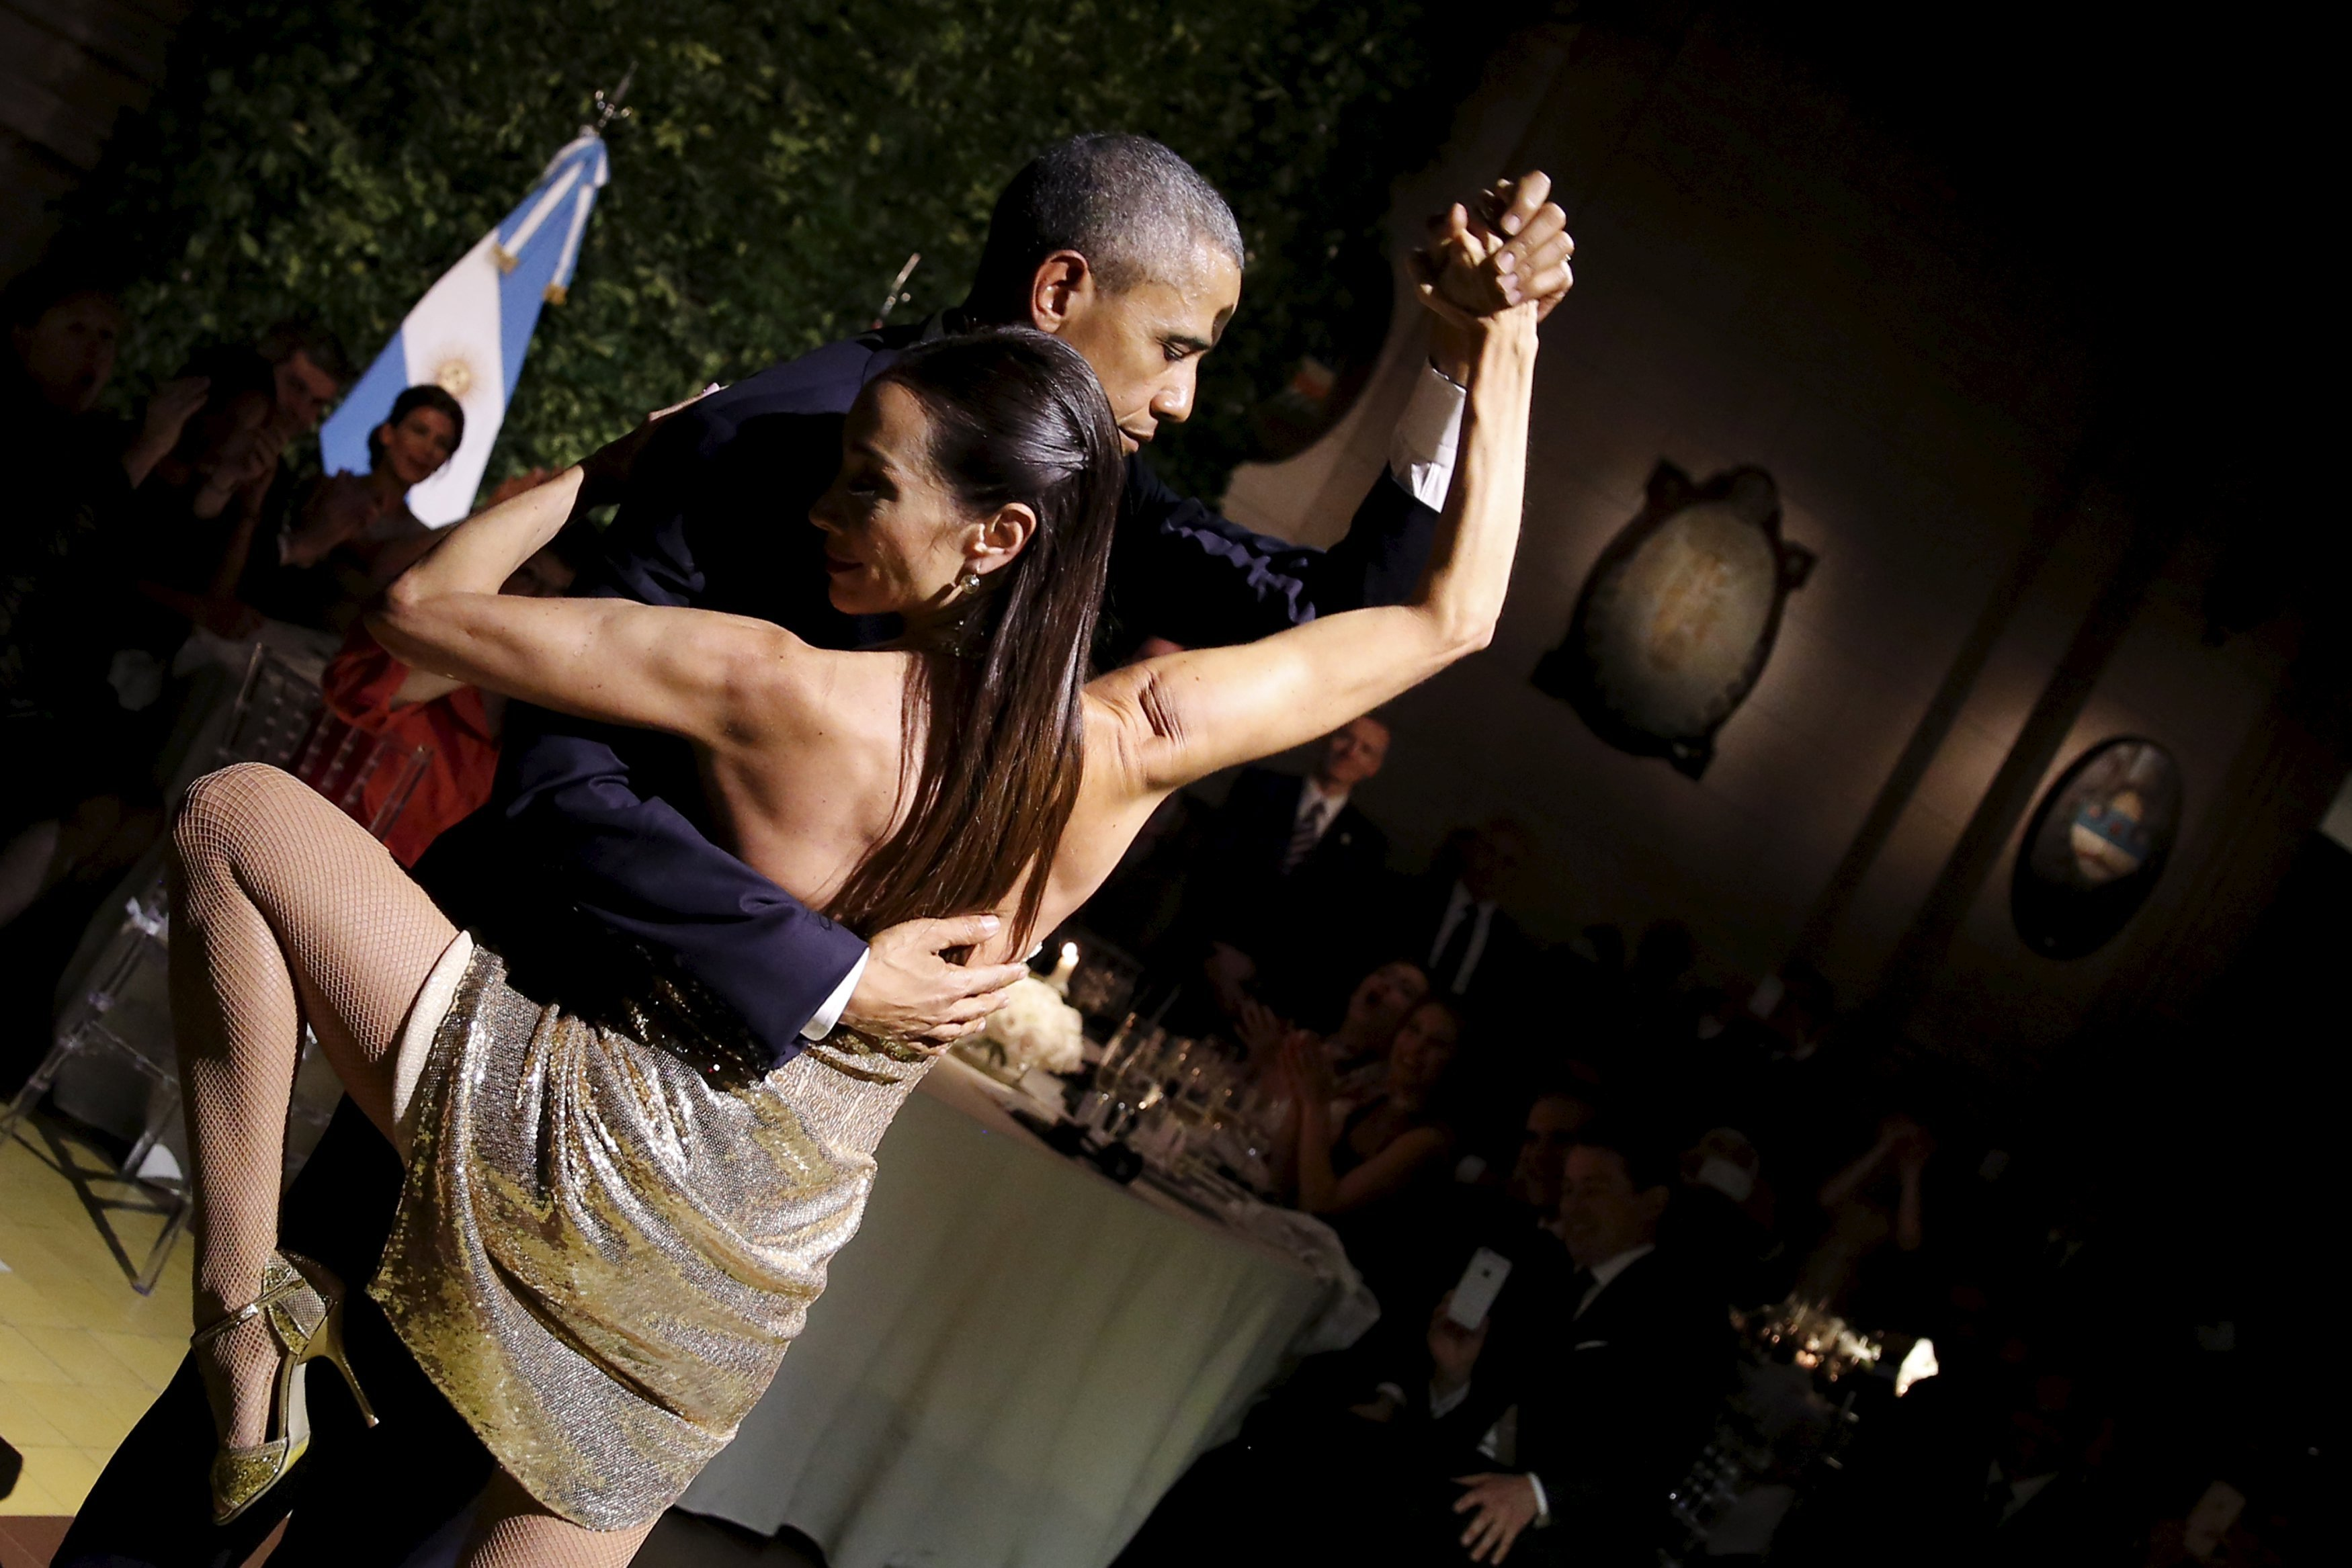 U.S. President Barack Obama dances tango during a state dinner hosted by Argentina's President Mauricio Macri at the Centro Cultural Kirchner as part of President Obama's two-day visit to Argentina, in Buenos Aires on March 23, 2016.